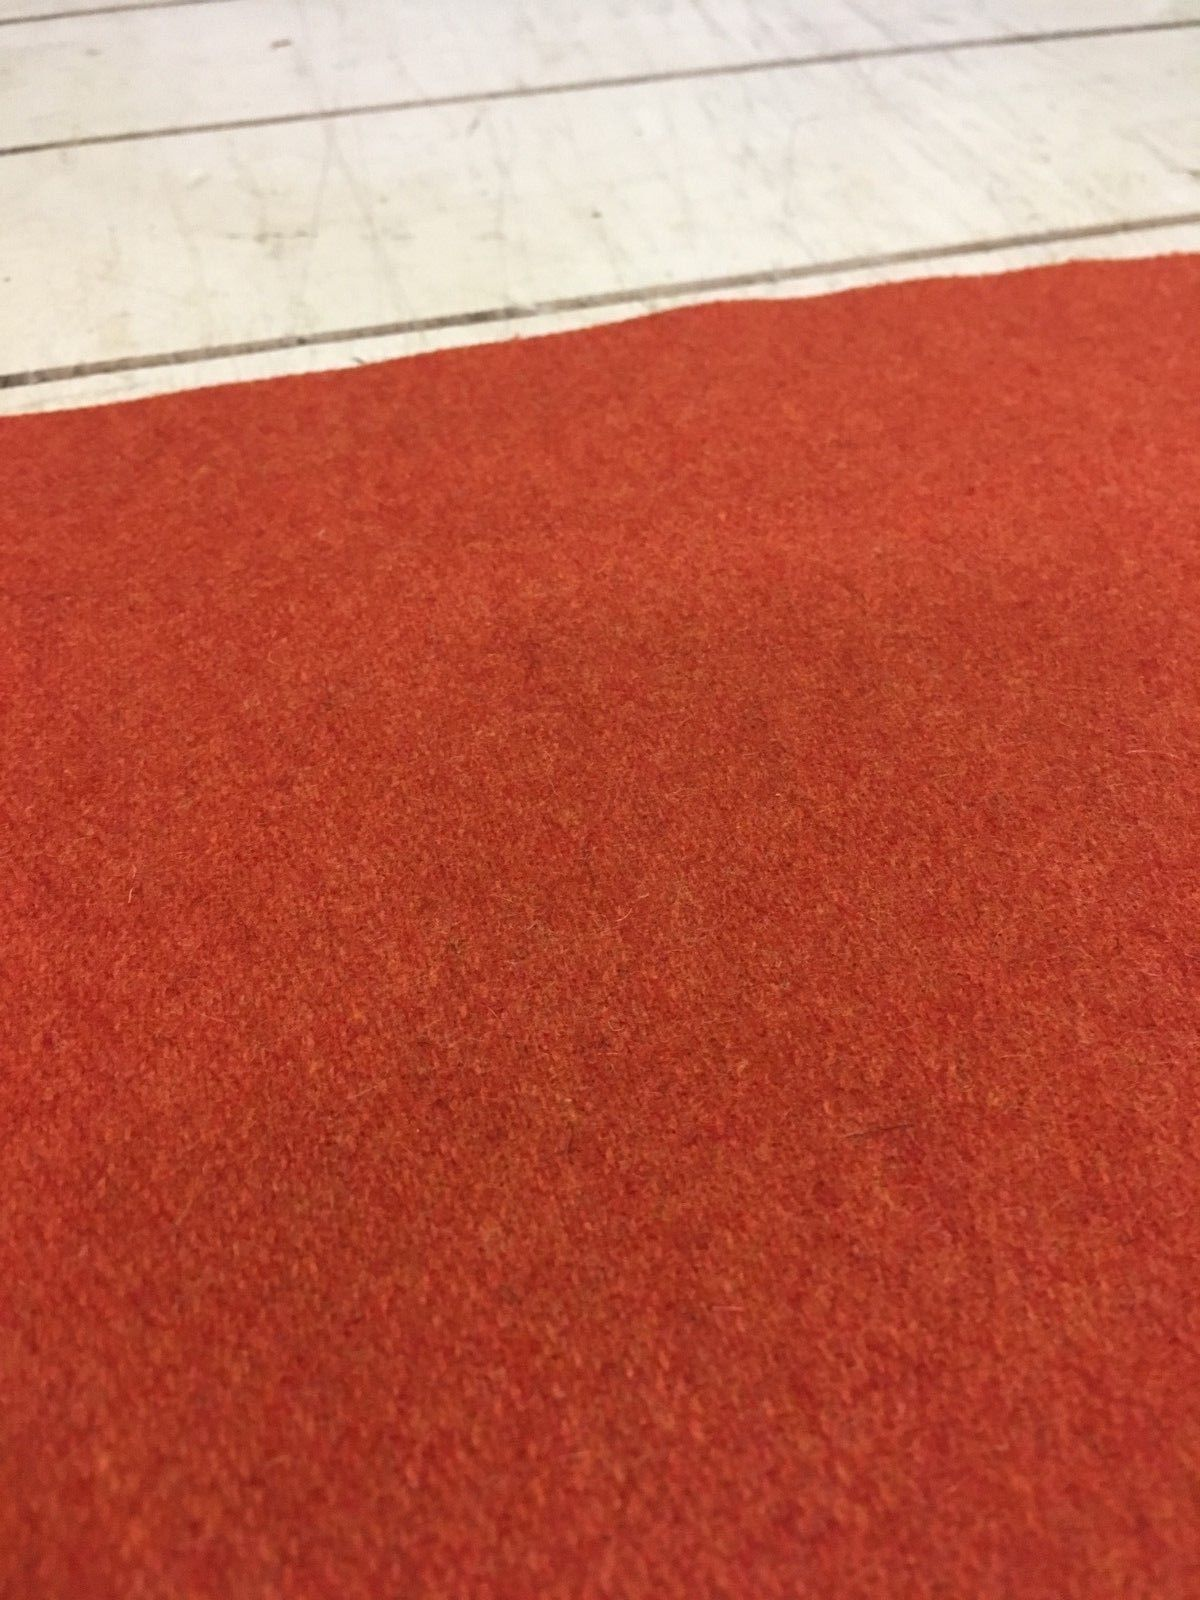 Mid Century Upholstery Fabric Red Twill Wool 4.875 yds HE